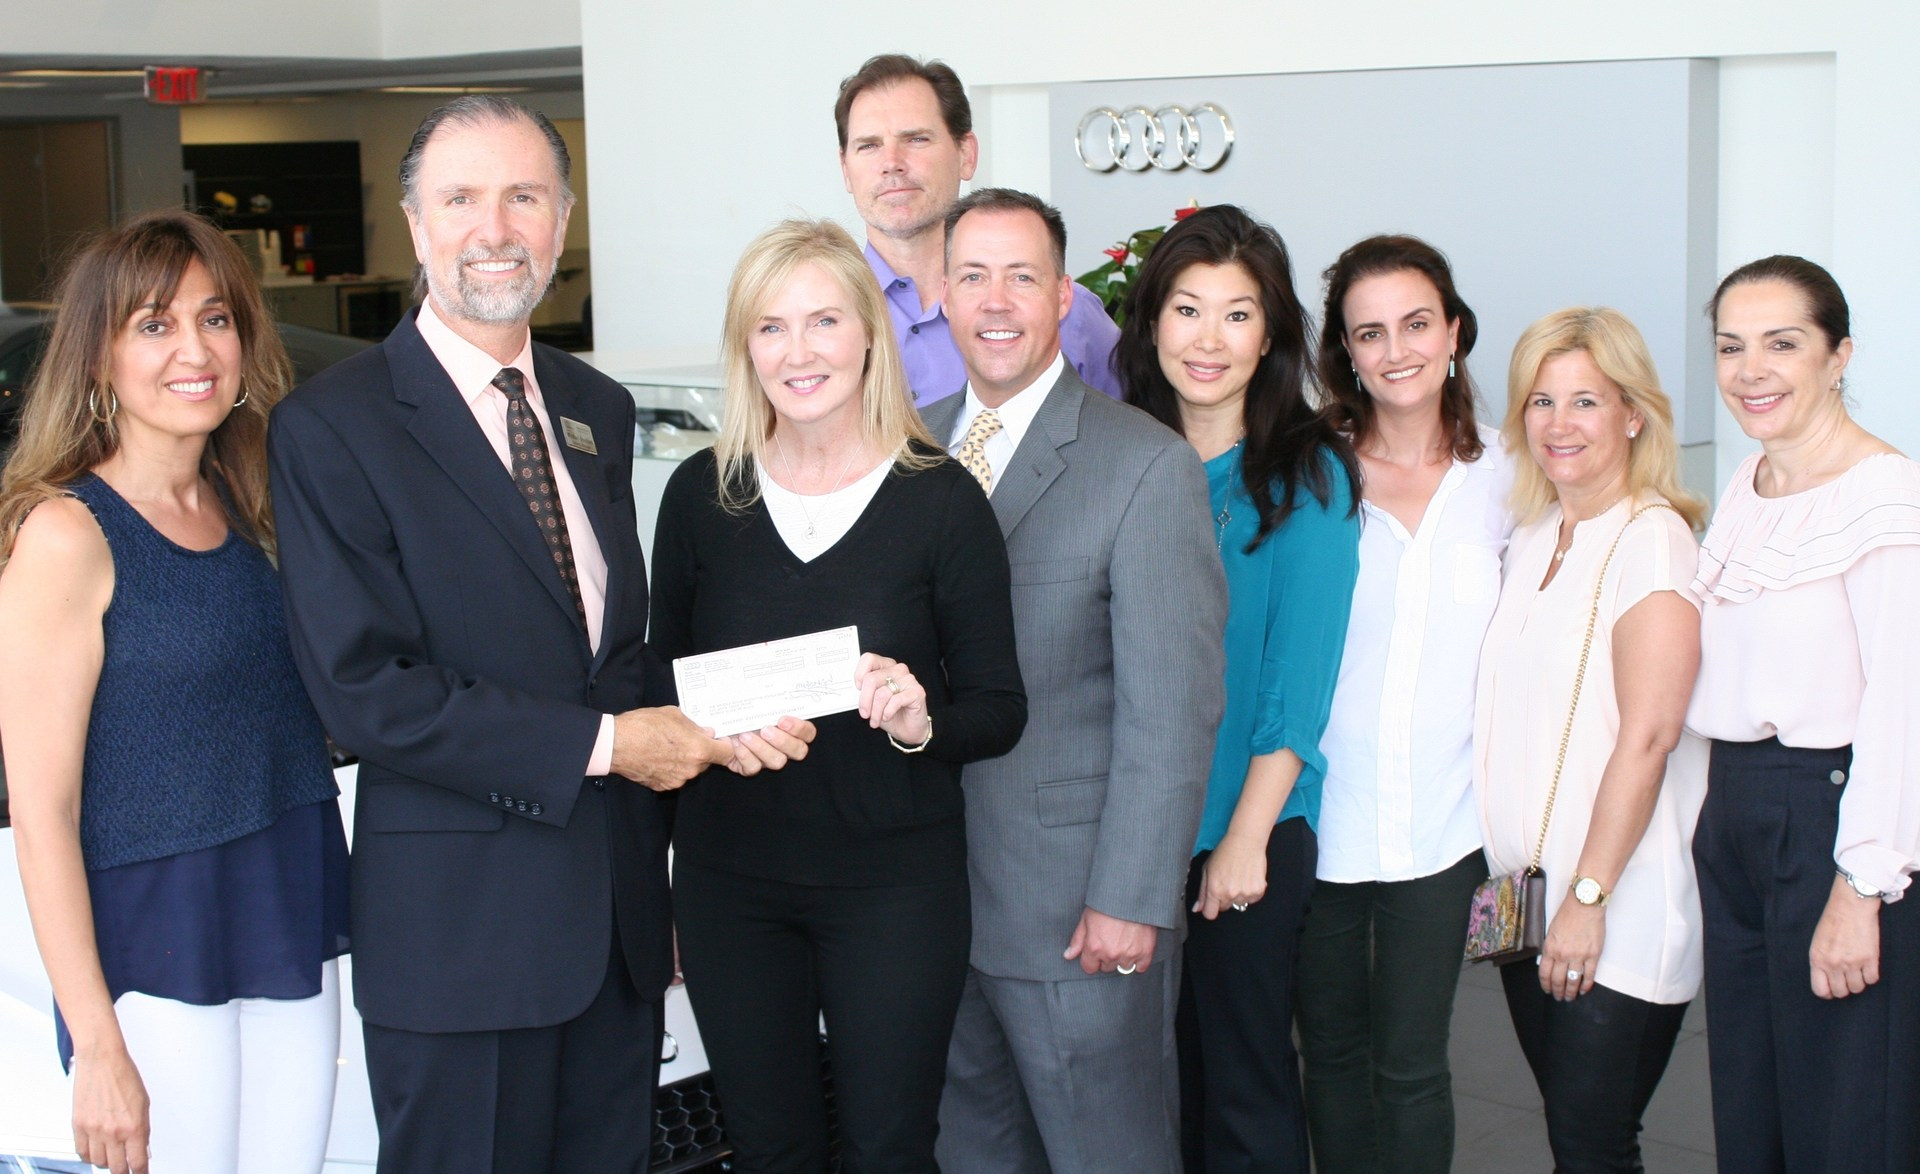 Audi check presentation with general manager and BHEF board members.